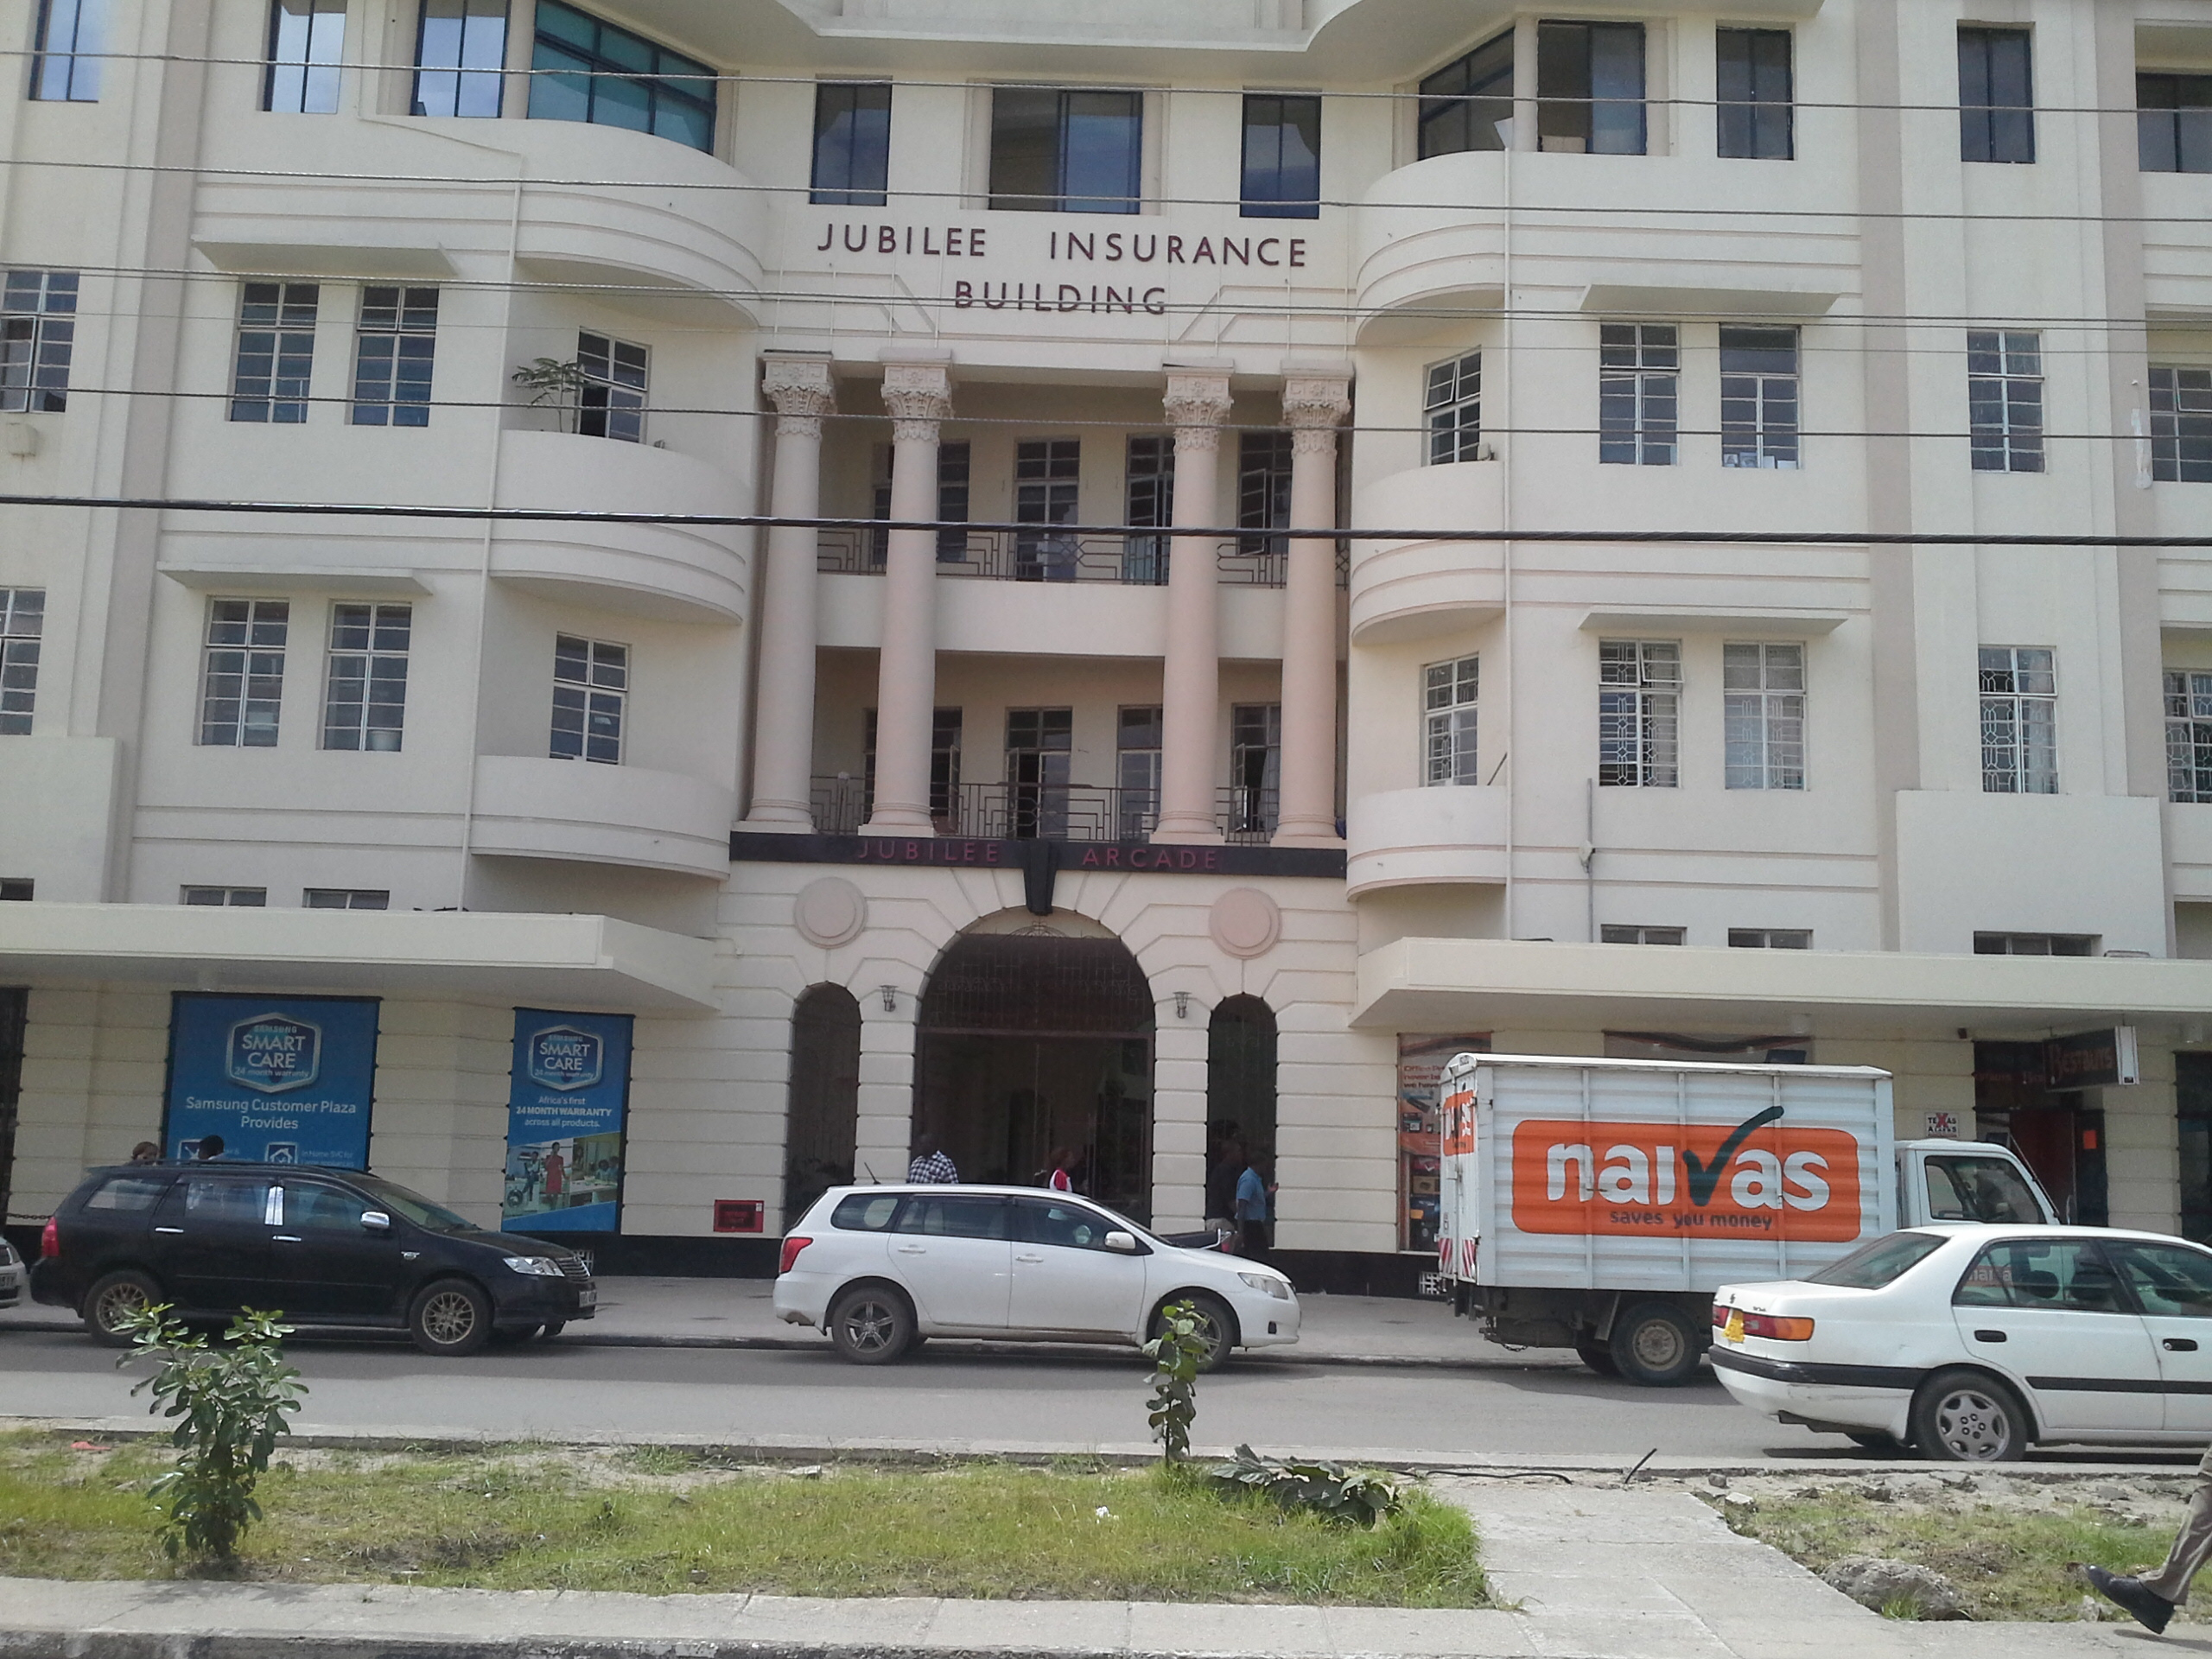 JUBILEE INSURANCE BUILDING - MOI AVENUE, MOMBASA